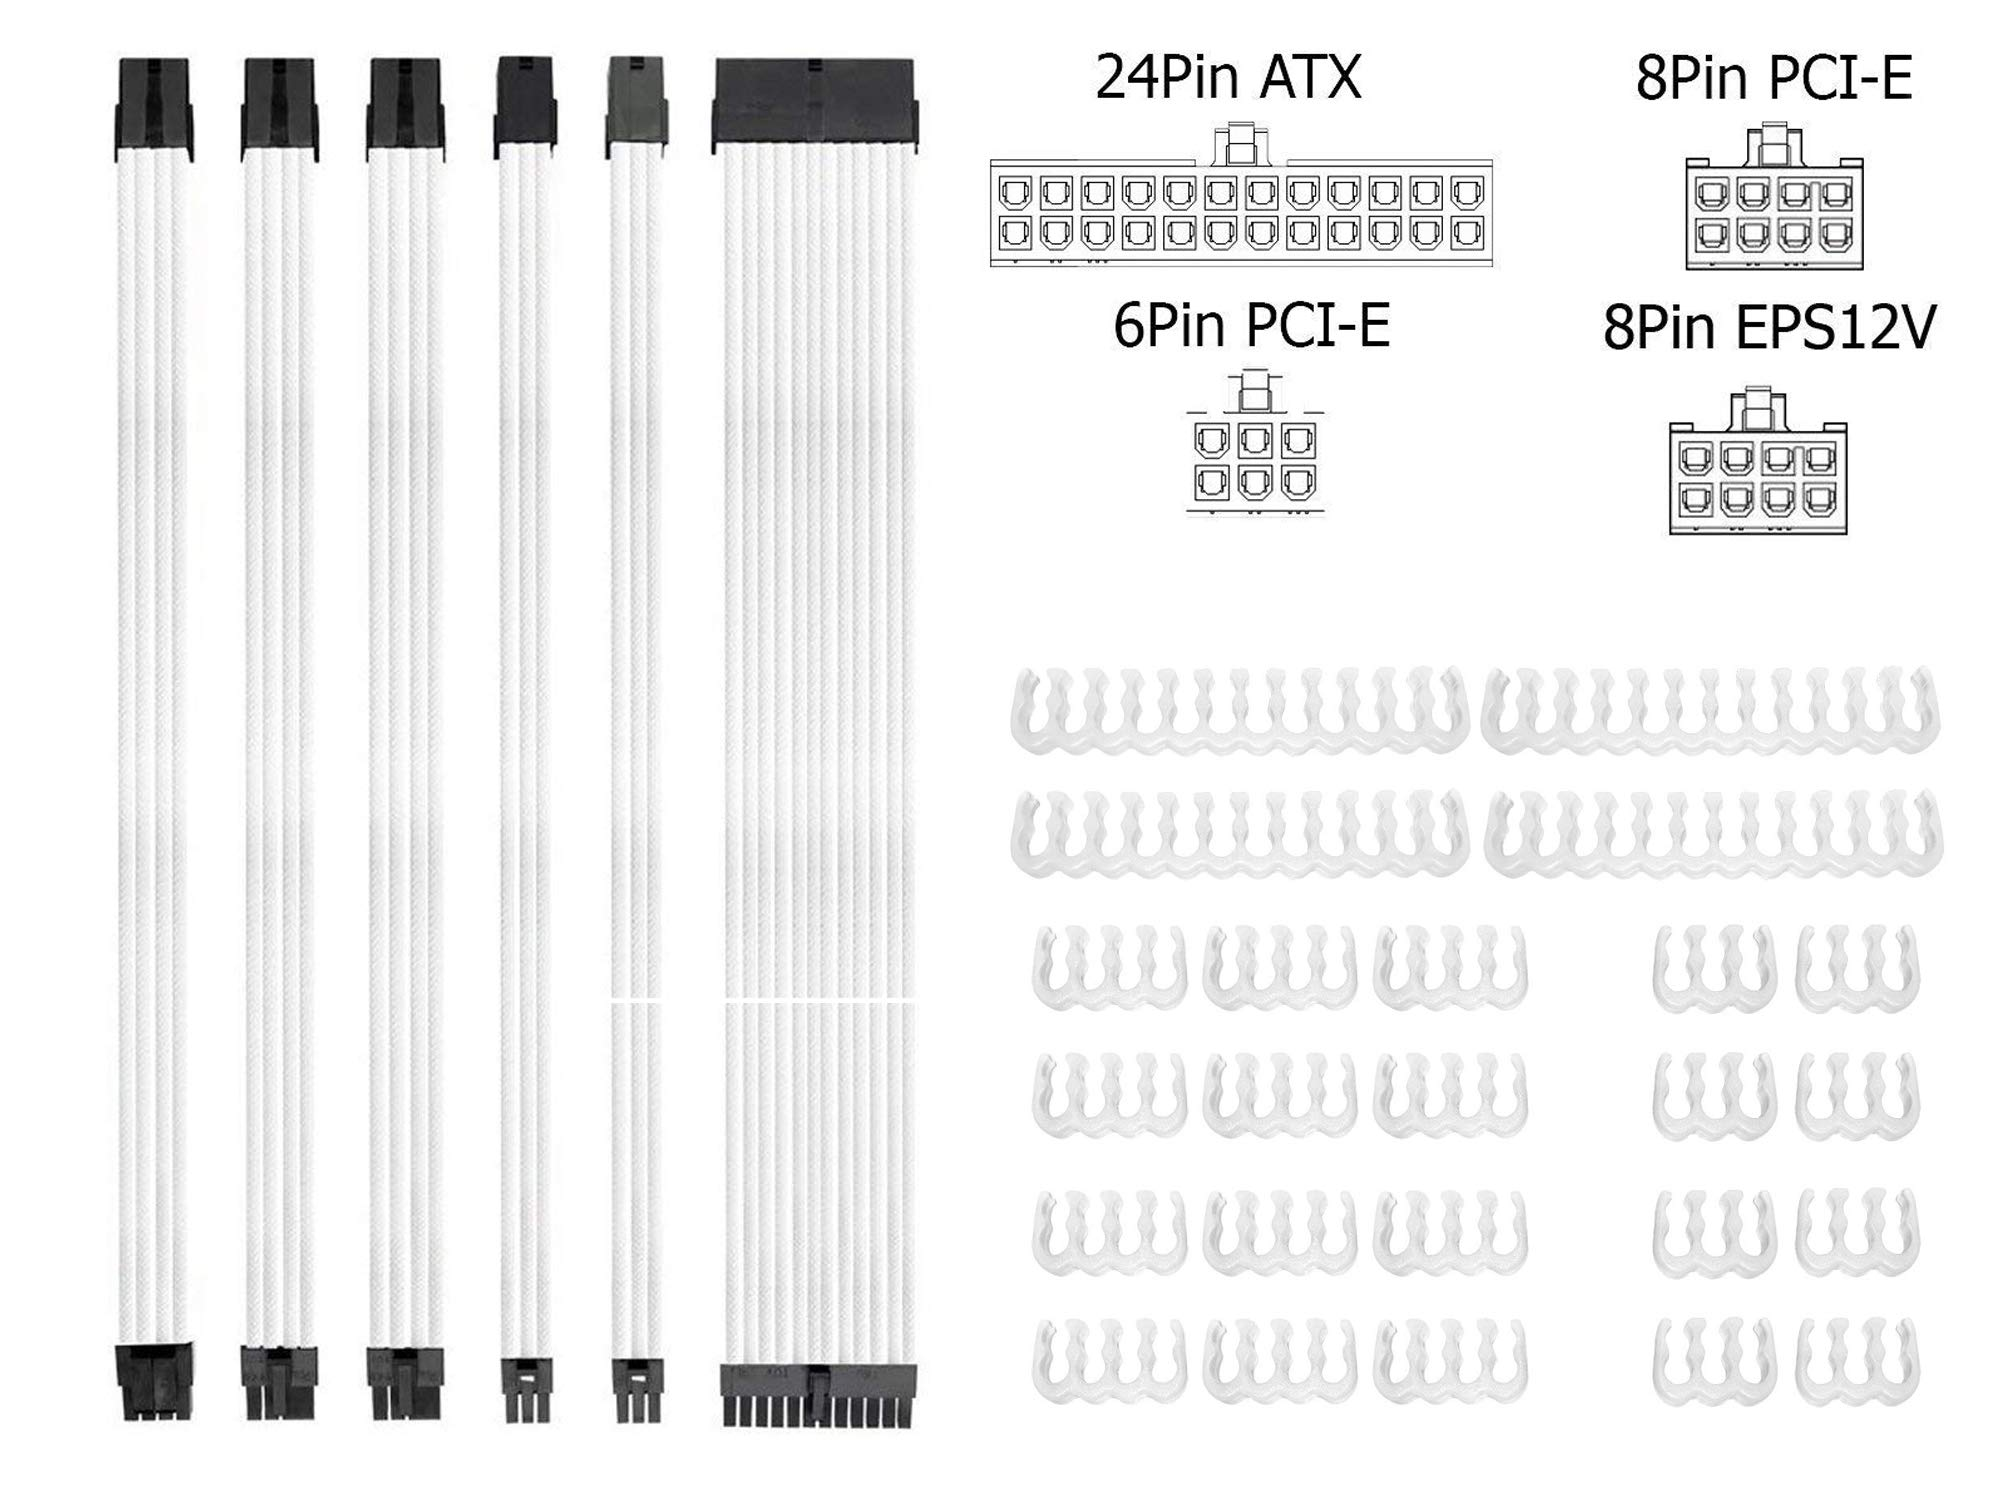 Braided ATX Sleeved Cable Extension Kit for Power Supply Cable Kit, PSU Connectors, 24 Pin, 8 Pin, 6 Pin 4 + 4 Pin, 6 Pack, with Cable Comb 24 Pieces Set 24-Pin, 8-Pin, 6-Pin (White) by Fstop Labs